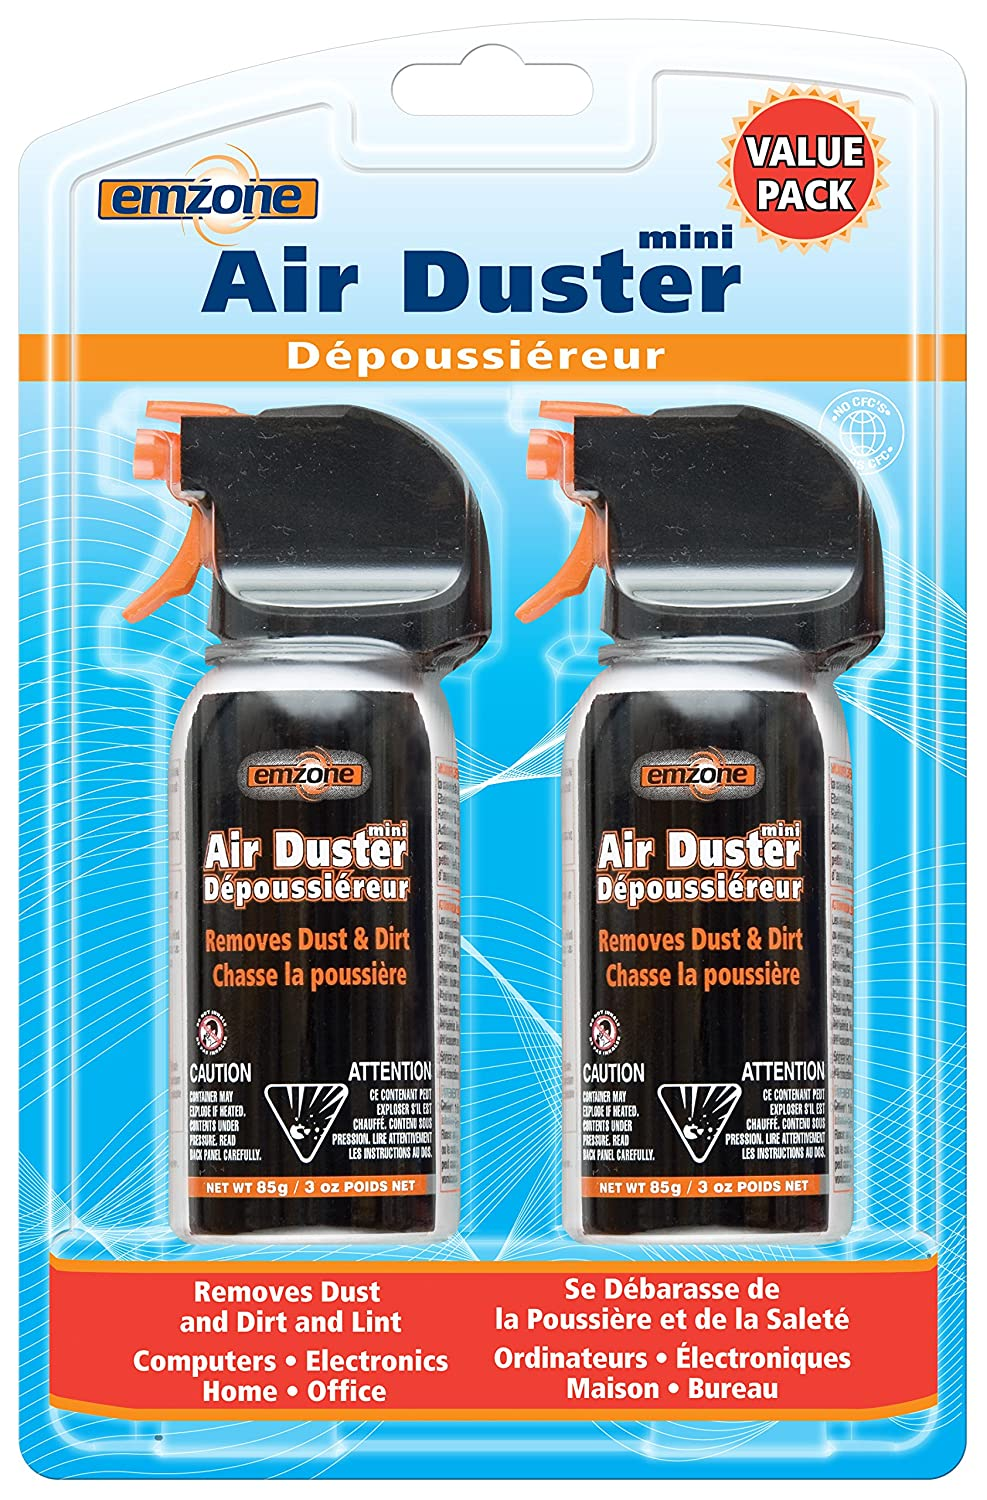 EMPACK EMP47062 Mini Value Pack Air Duster-for Desktop Computer, Keyboard, Printer, Optical Disc Player, Digital Camera, Telephone-Moisture-Free, VOC-Free-1 Each S.P. Richards CA